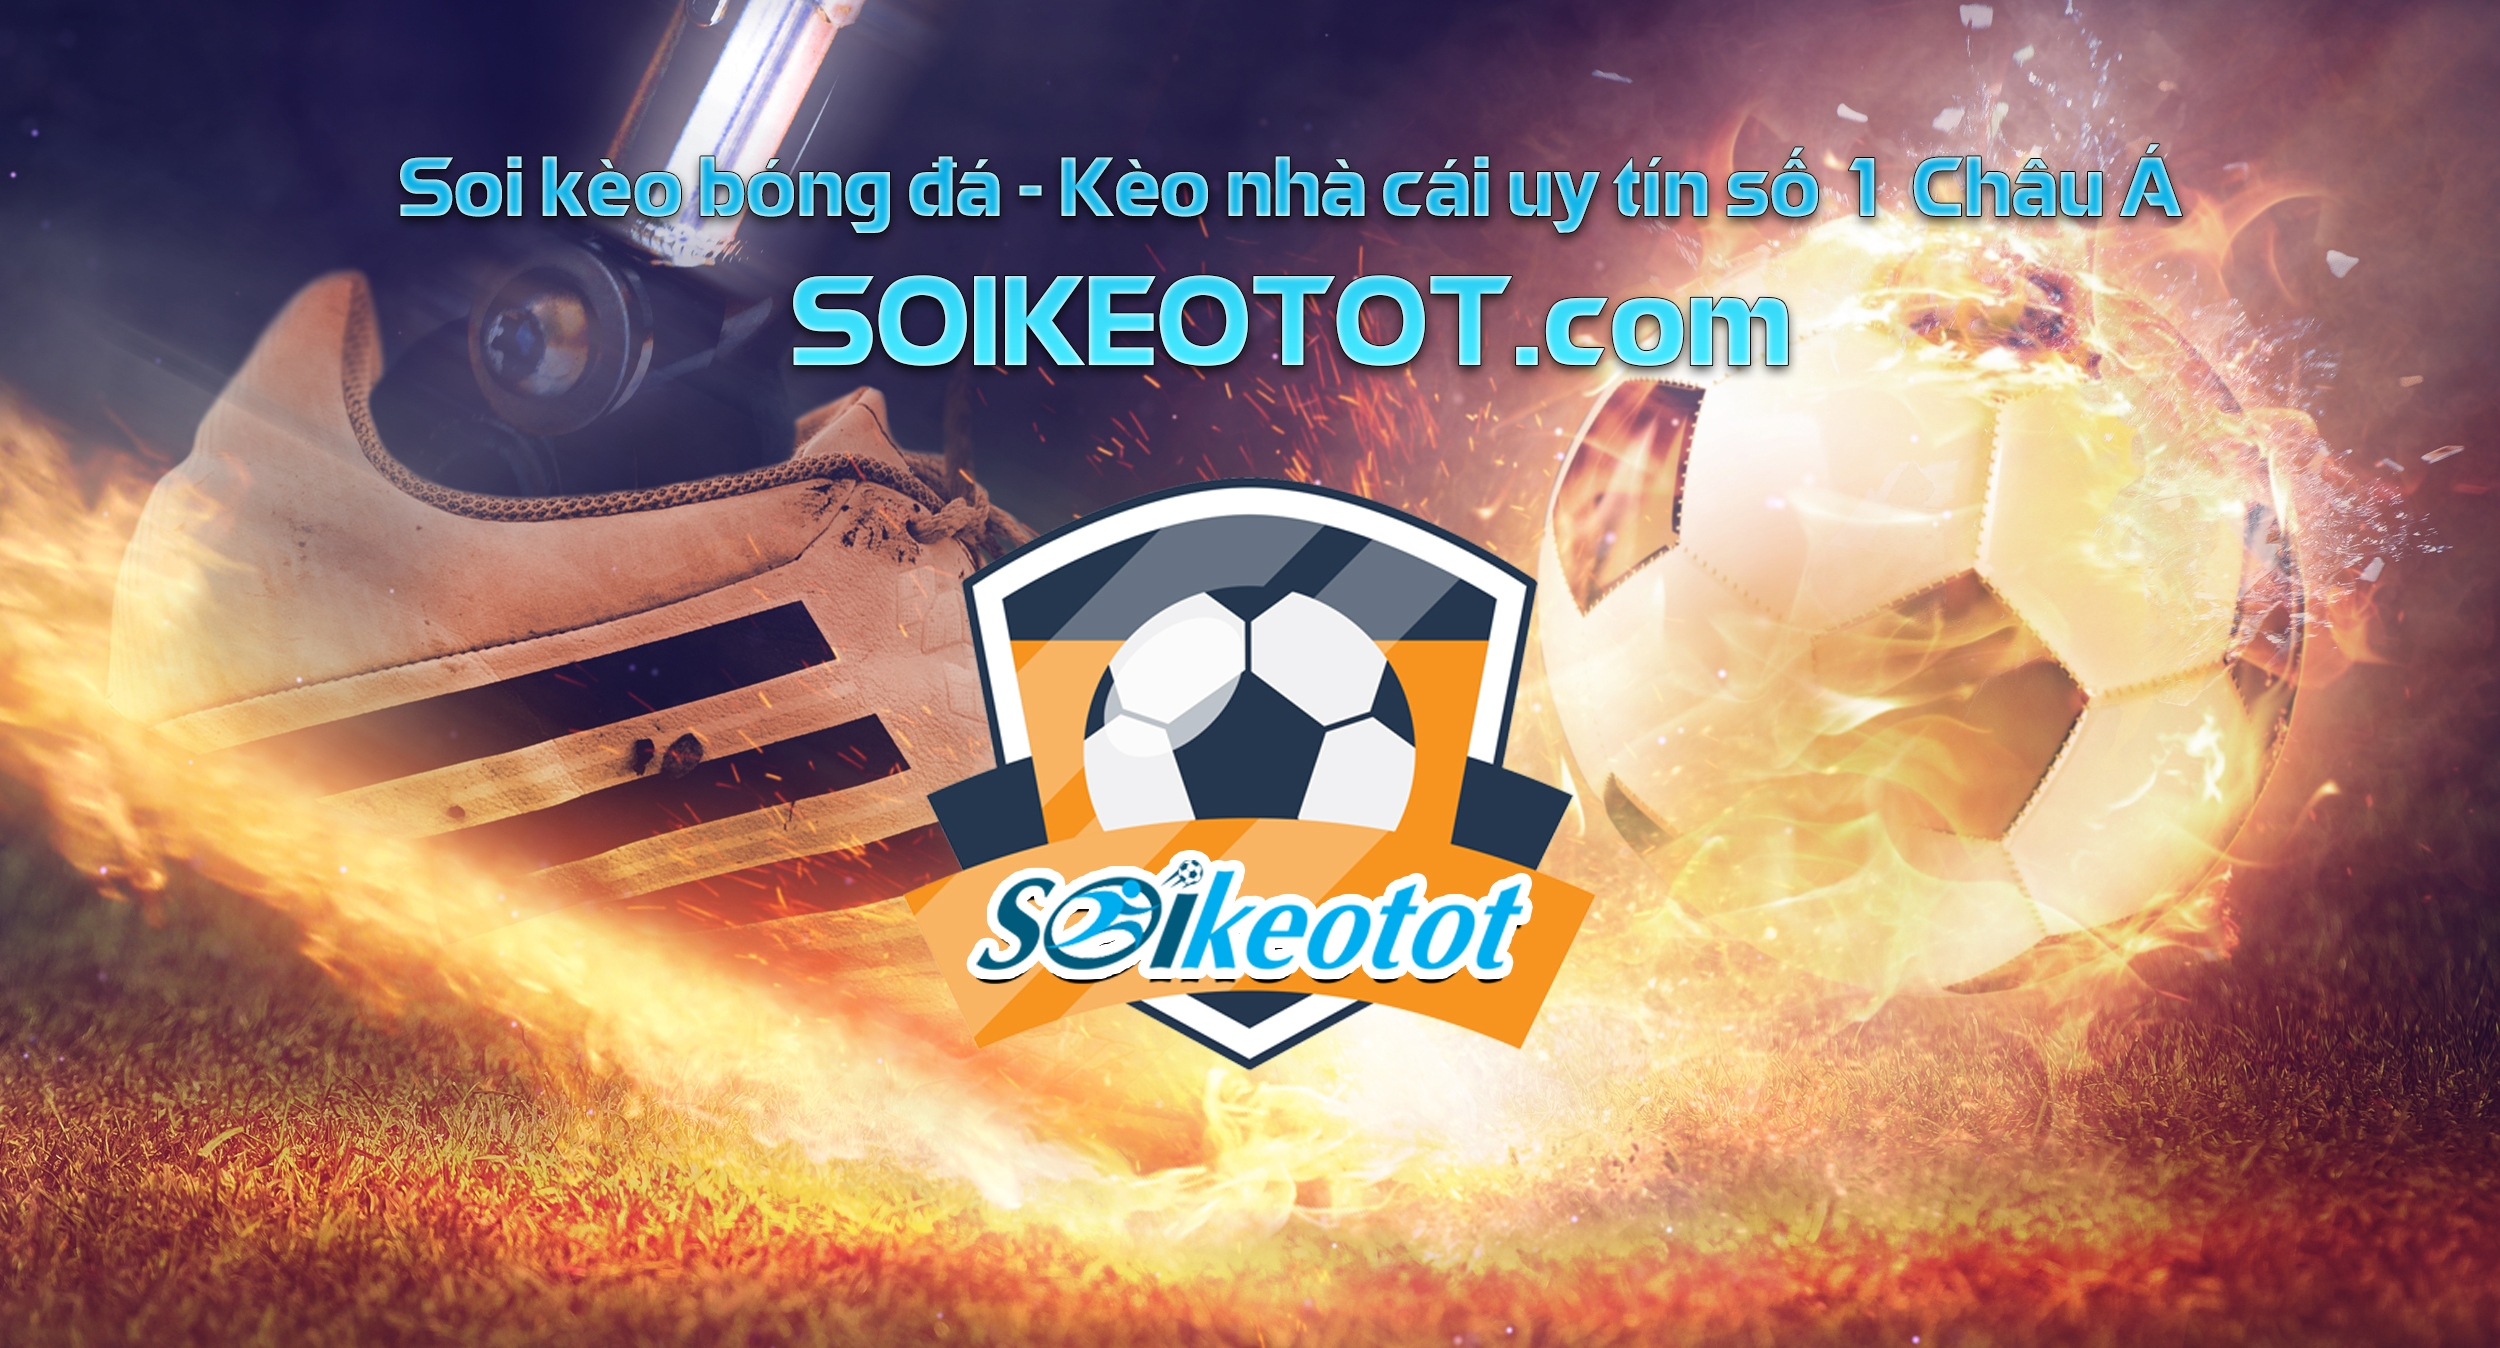 (@soikeotot) Cover Image